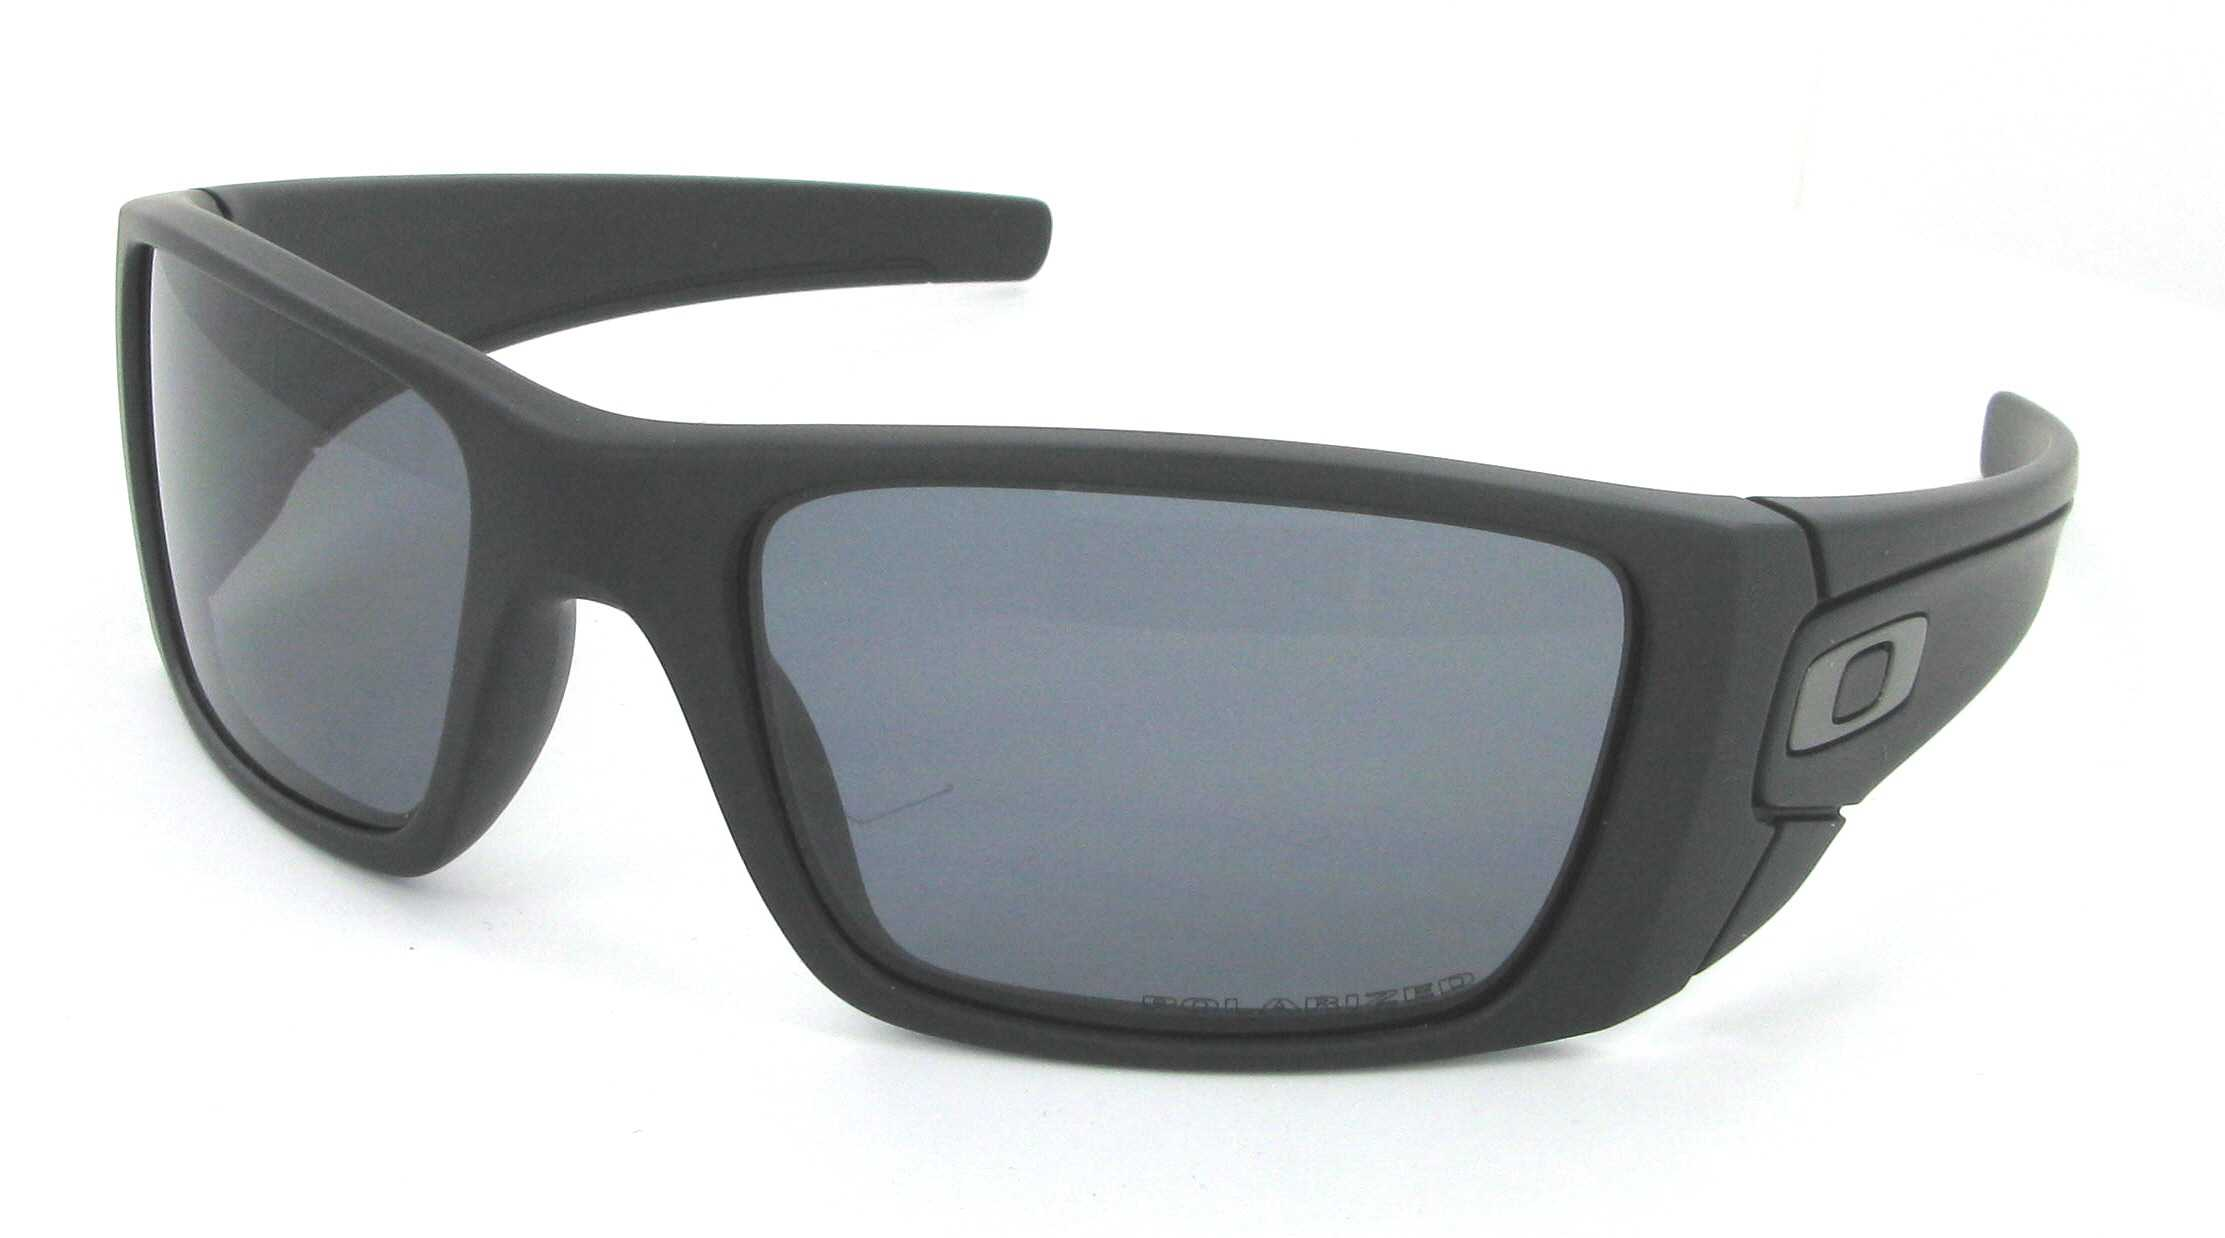 lunette de soleil pas cher oakley - www.allow-project.eu 52fe84cd8419